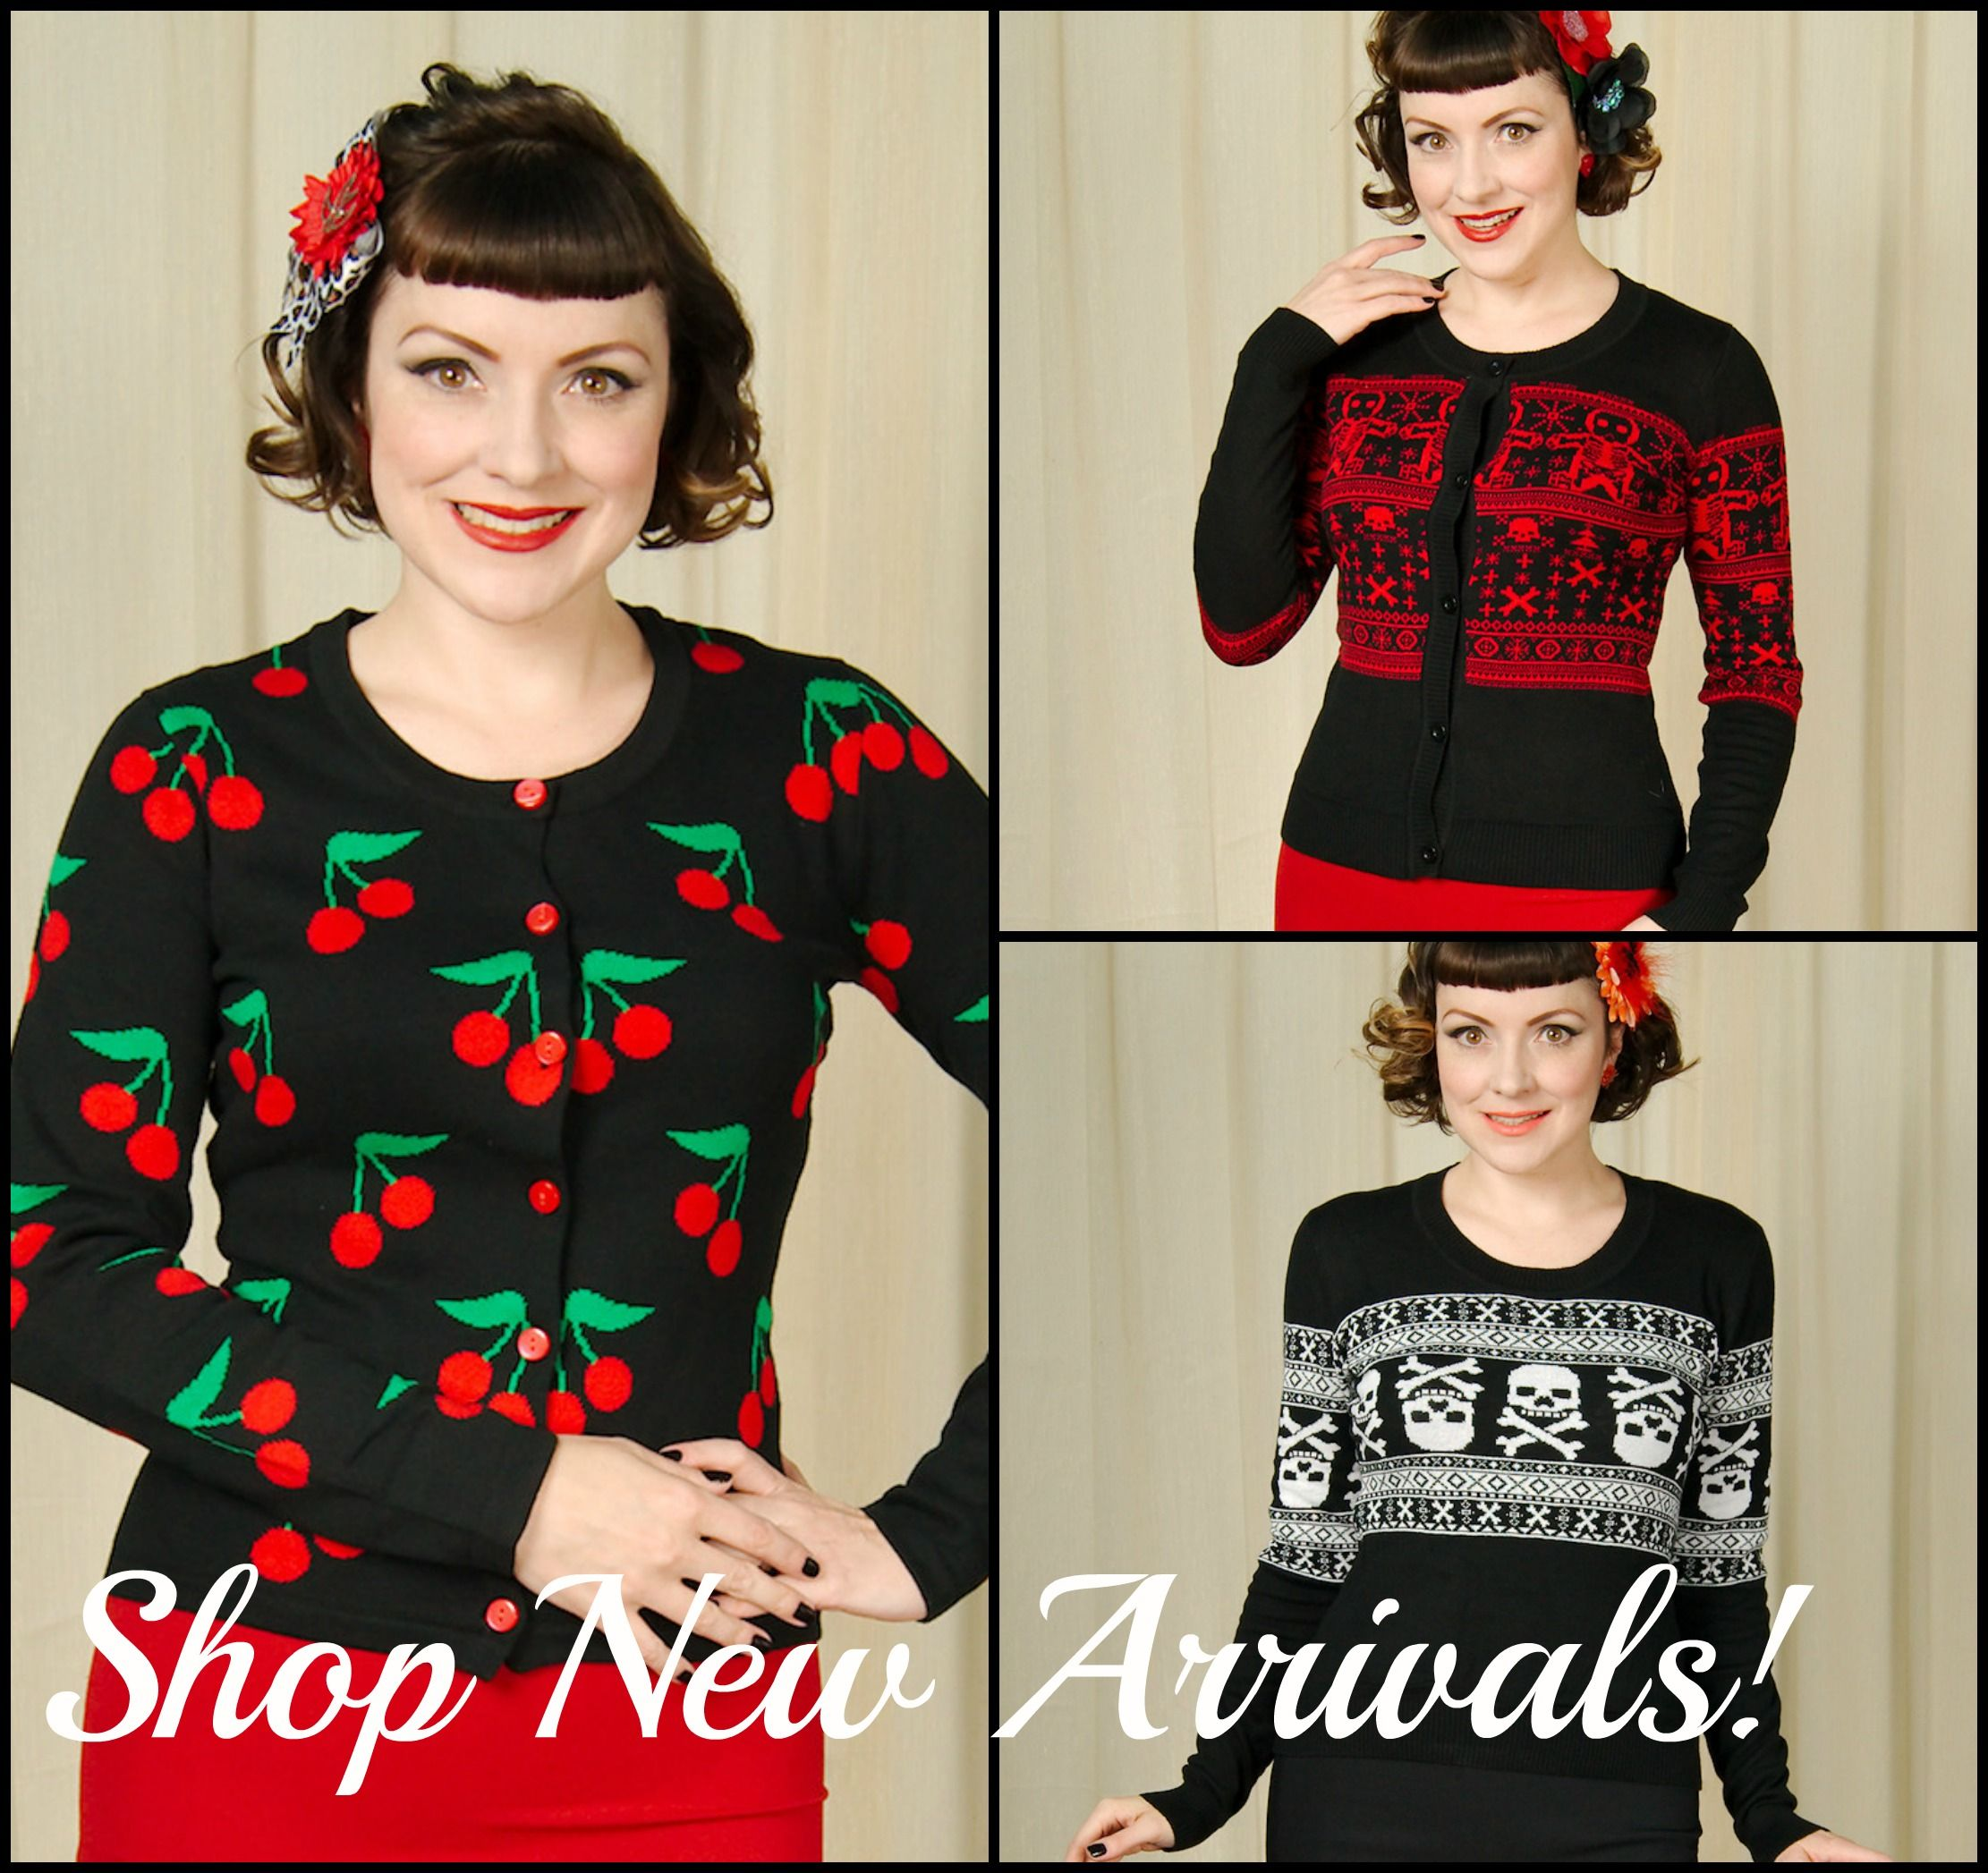 Cozy up in these sweaters! Cherries, skulls and skeleton gingerbread! http://shop.catslikeus.com/collections/new-arrivals?utm_content=buffer0be66&utm_medium=social&utm_source=pinterest.com&utm_campaign=buffer #halloween #pinup